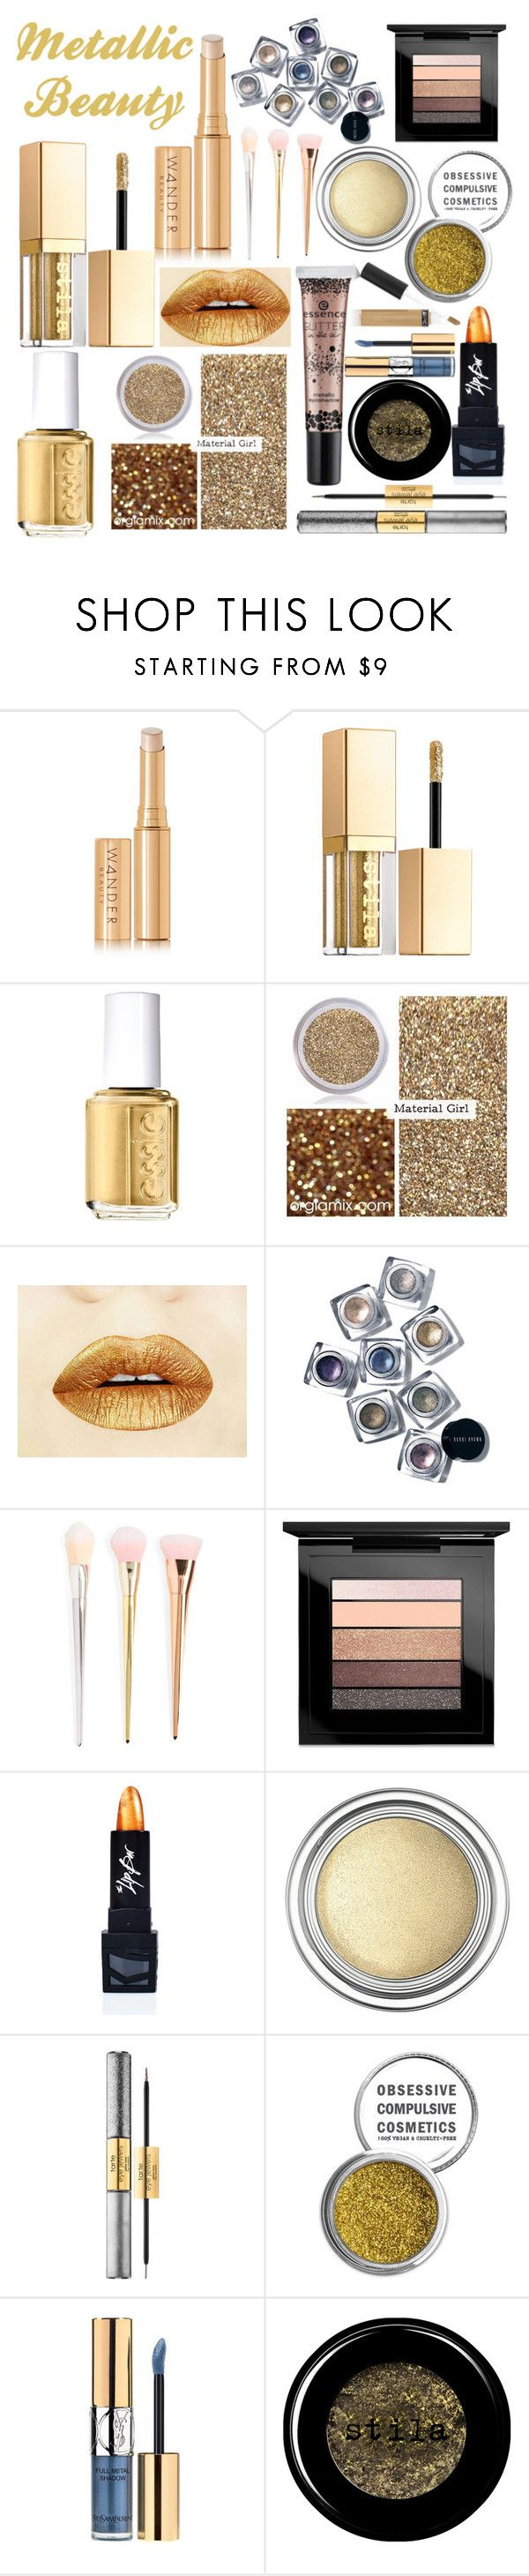 """""""Metallic Beauty"""" by northern-queen ❤ liked on Polyvore featuring beauty, Wander Beauty, Stila, Essie, Material Girl, Bobbi Brown Cosmetics, MAC Cosmetics, The Lip Bar, Christian Dior and tarte"""